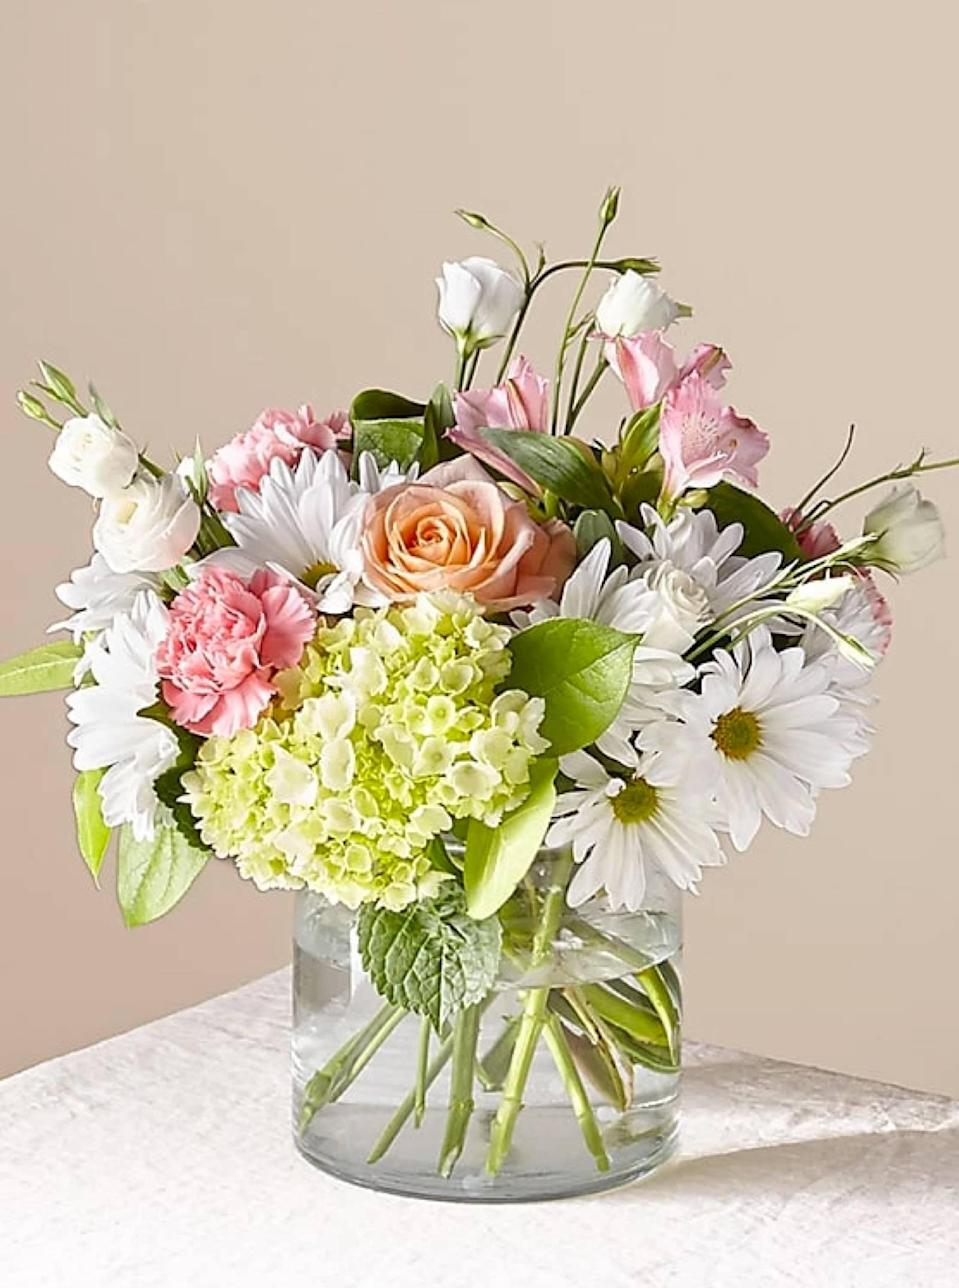 """ProFlowers lets you send flowers by date and zip code, so on-time delivery is guaranteed. The service curates options for different occasions—think birthday milestones, housewarmings, or """"Just Because"""" bouquets. Once you find a fitting pick, you can order it in whatever size meets your budget. $72, Flutter By Bouquet. <a href=""""https://www.proflowers.com/product/flutter-by-bouquet-prd-21-s2?"""" rel=""""nofollow noopener"""" target=""""_blank"""" data-ylk=""""slk:Get it now!"""" class=""""link rapid-noclick-resp"""">Get it now!</a>"""